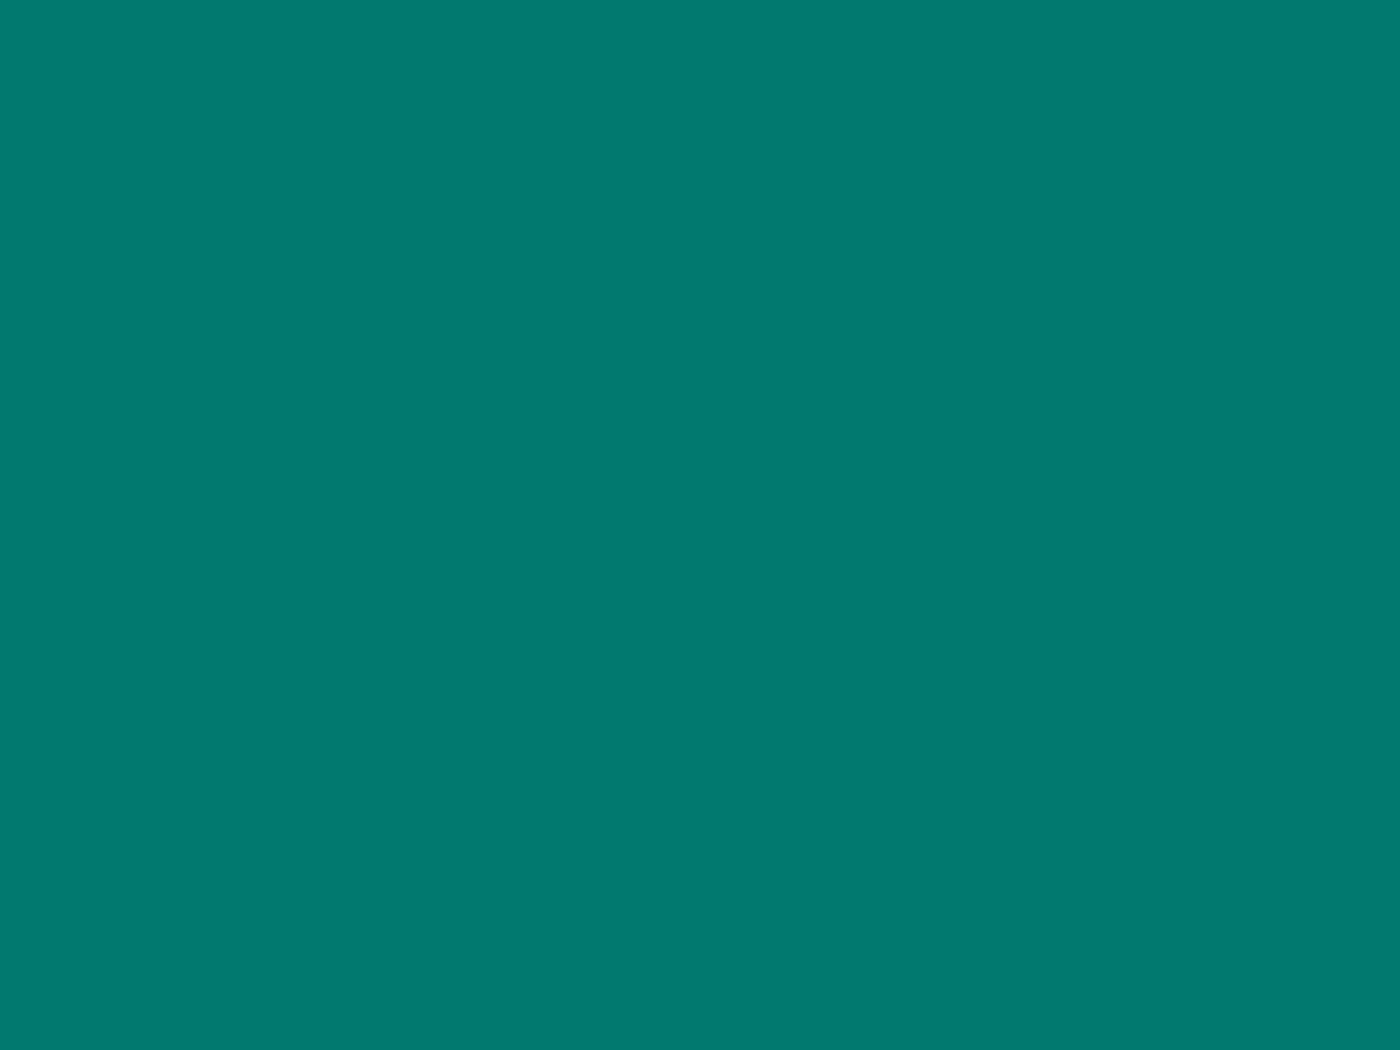 1400x1050 Pine Green Solid Color Background